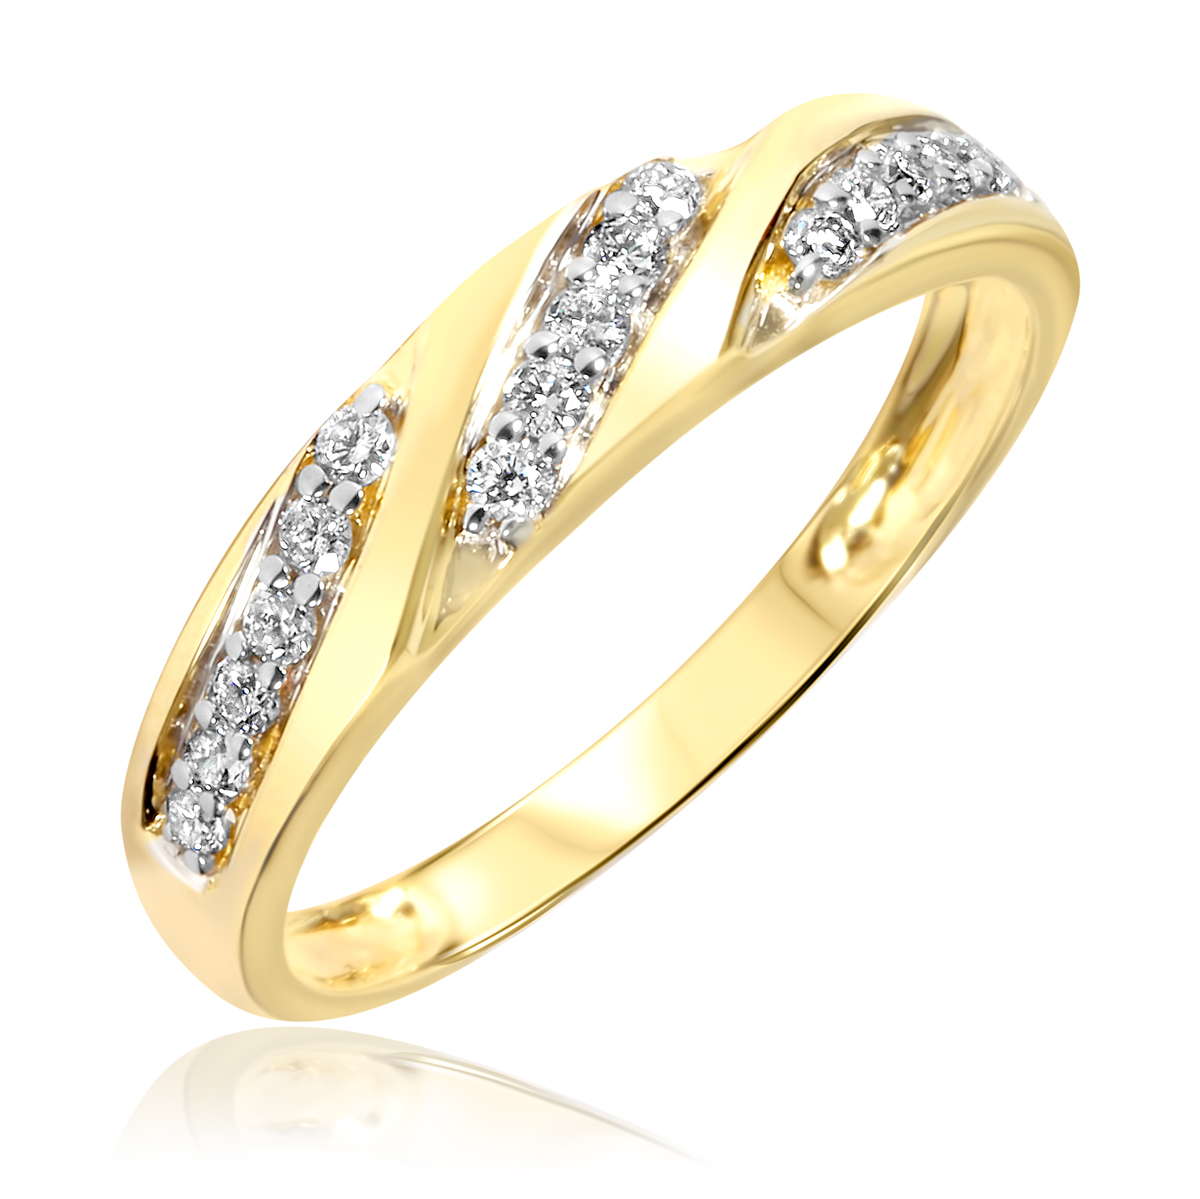 14 carat tw diamond womens wedding ring 14k yellow